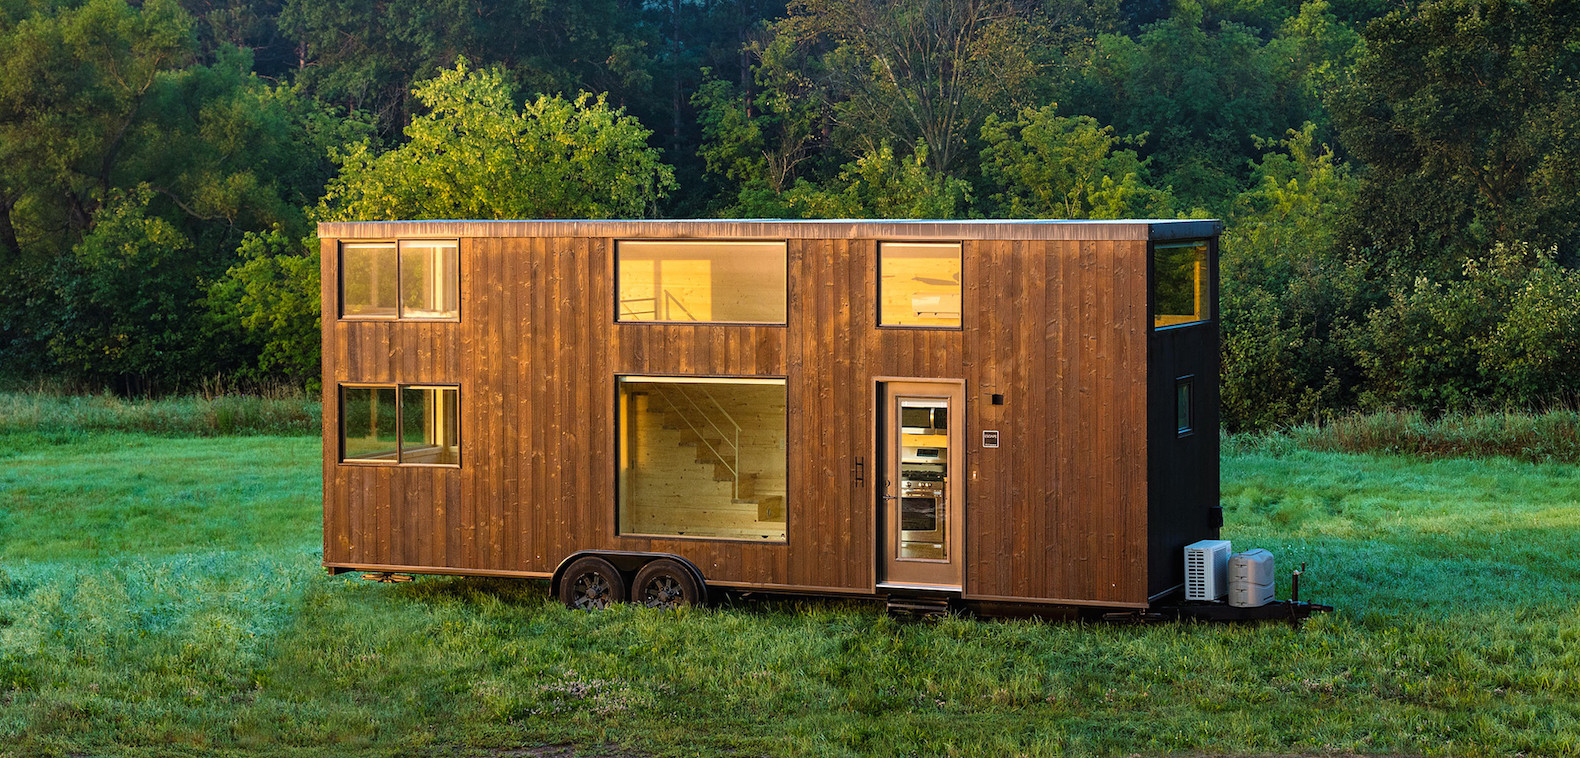 Timber cabin on wheels lets you hit the open road in luxurious comfort